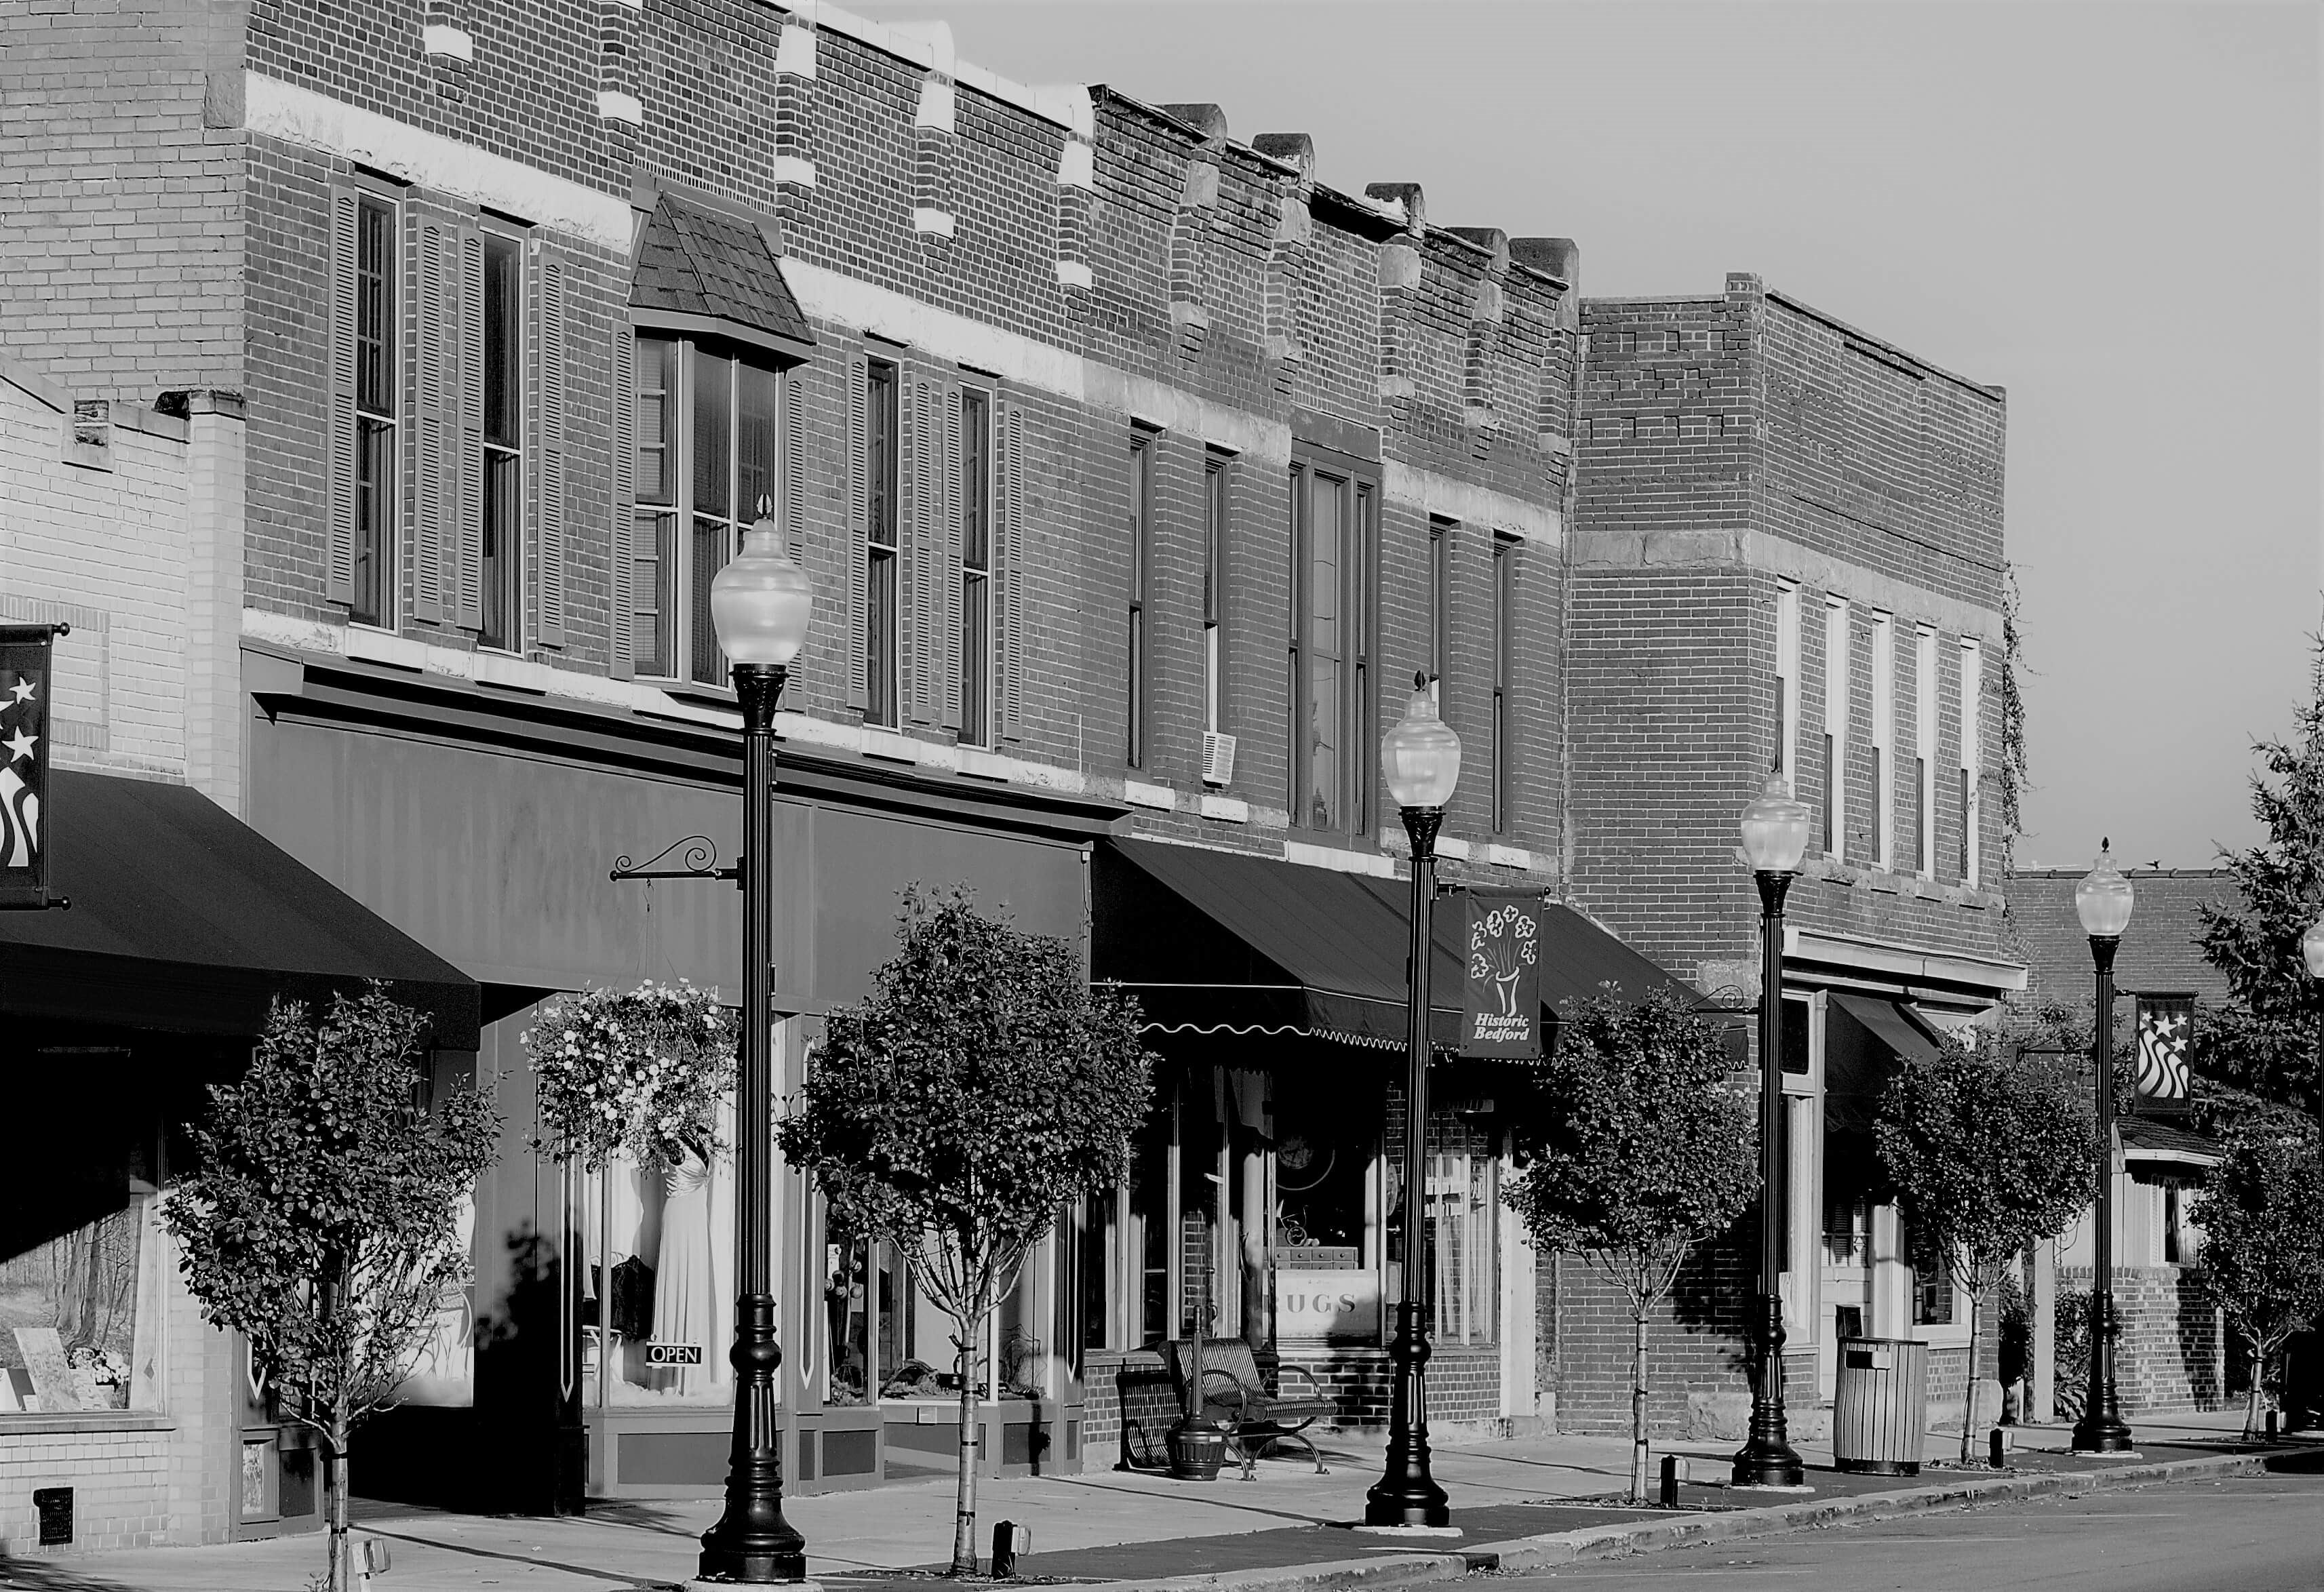 SEC All About Main Street in 2019